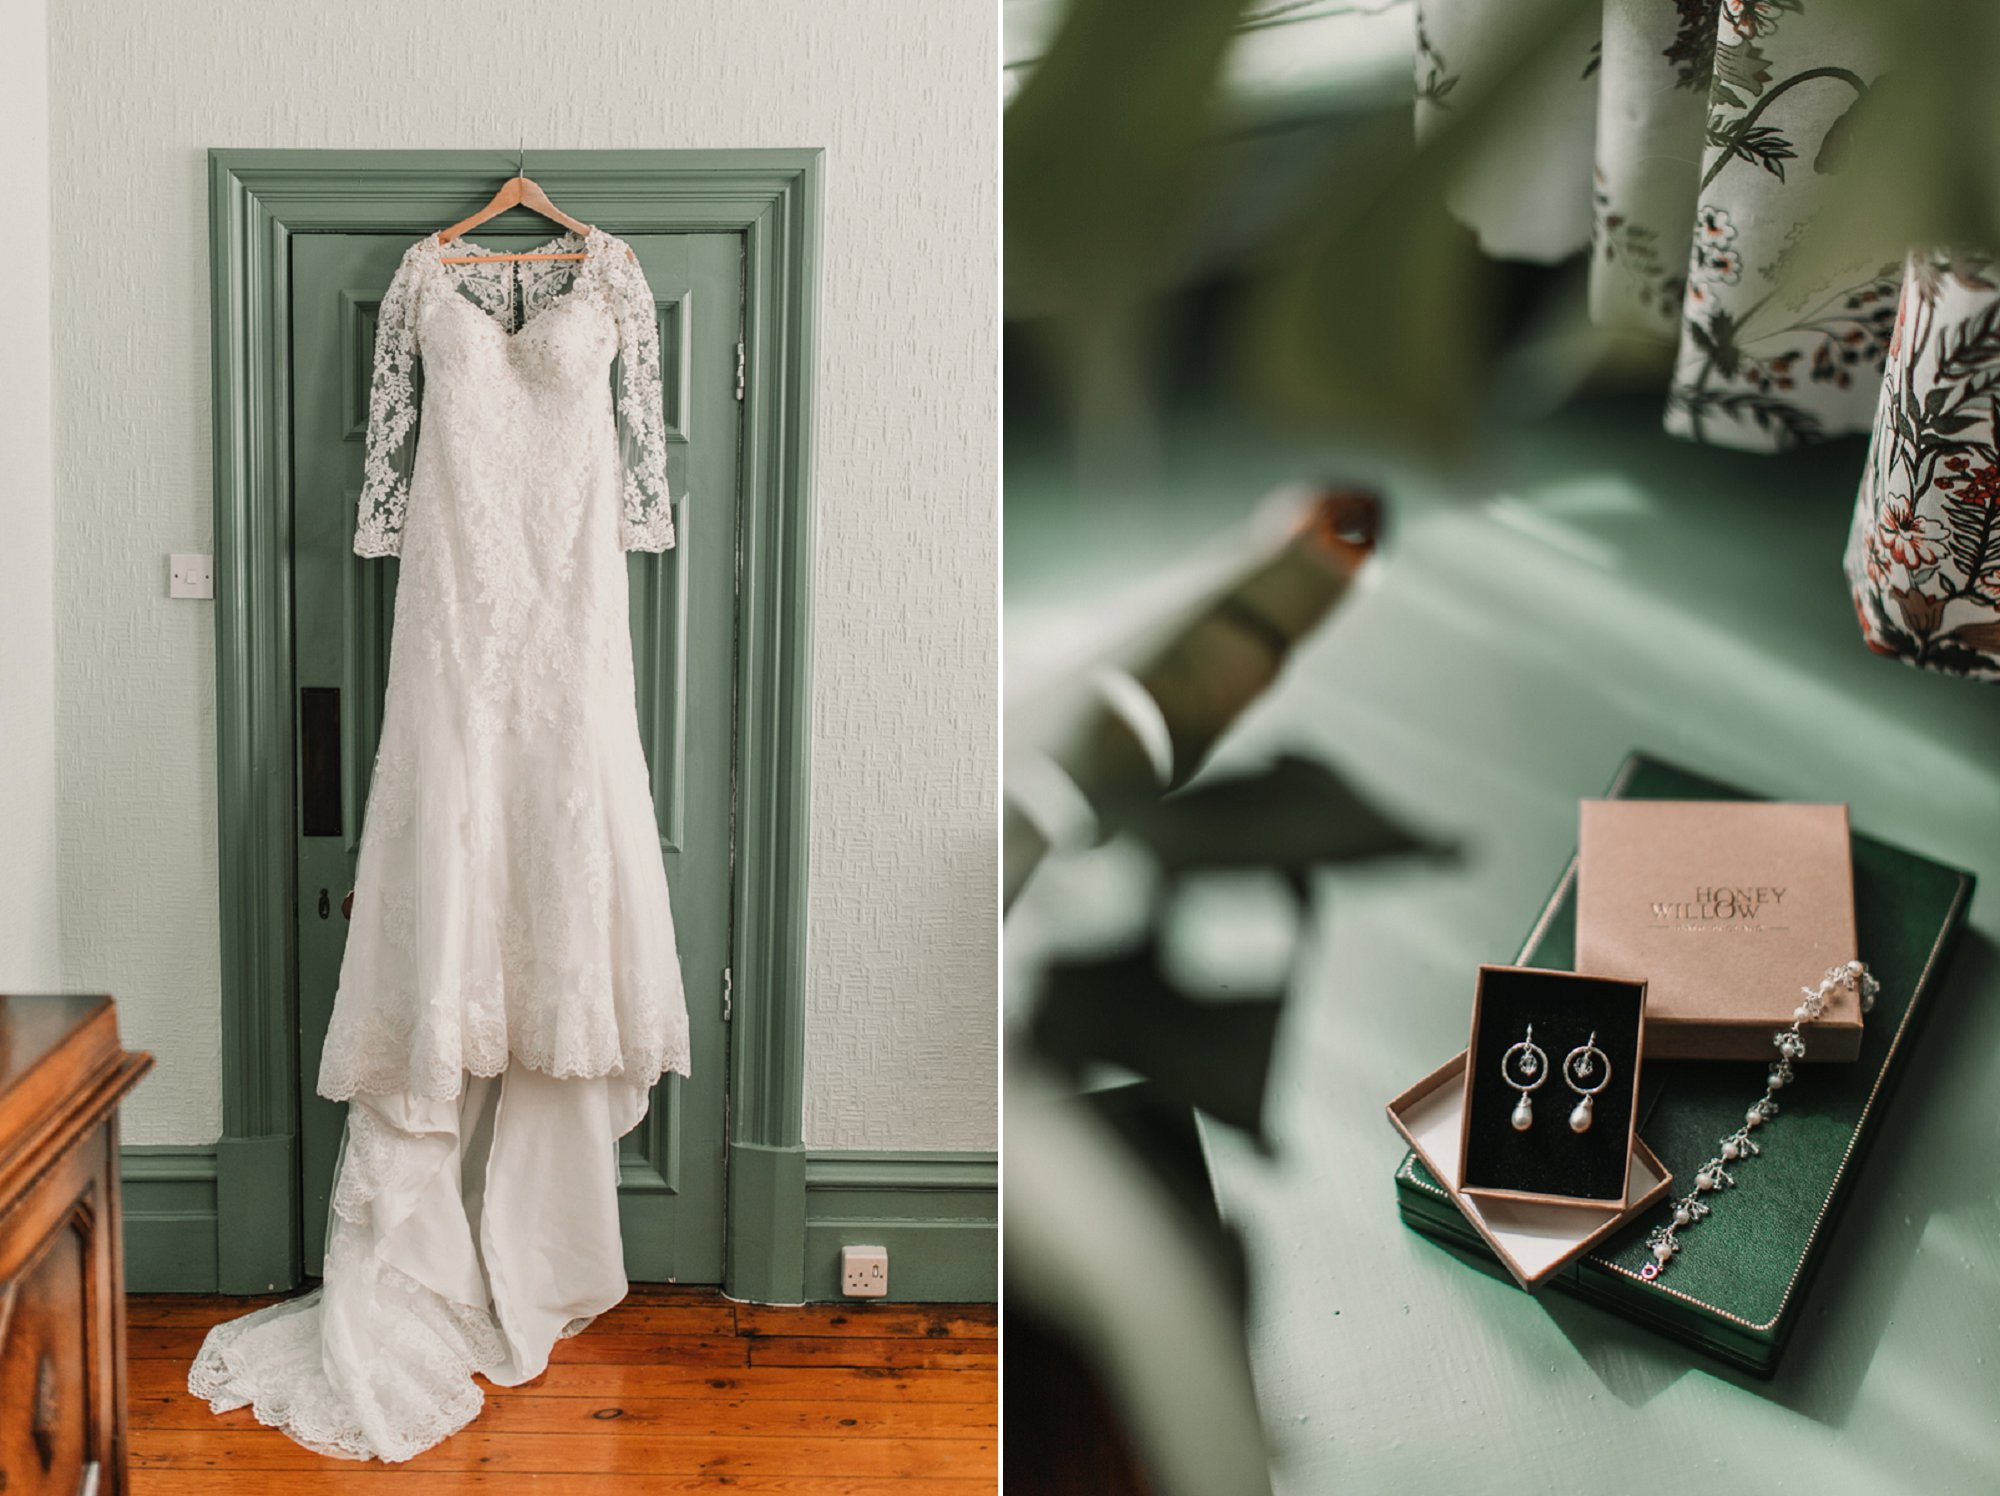 Sci-Fi Inspired Wedding with references to Star Wars, Star Trek, Dr Who and Firefly. Be sure to check out the Lightsaber boutquet! Photographed in a dreamy feminine style by photographed by Natalie Pluck. To see more from this wedding click here: https://www.nataliepluck.com/sci-fi-inspired-wedding/